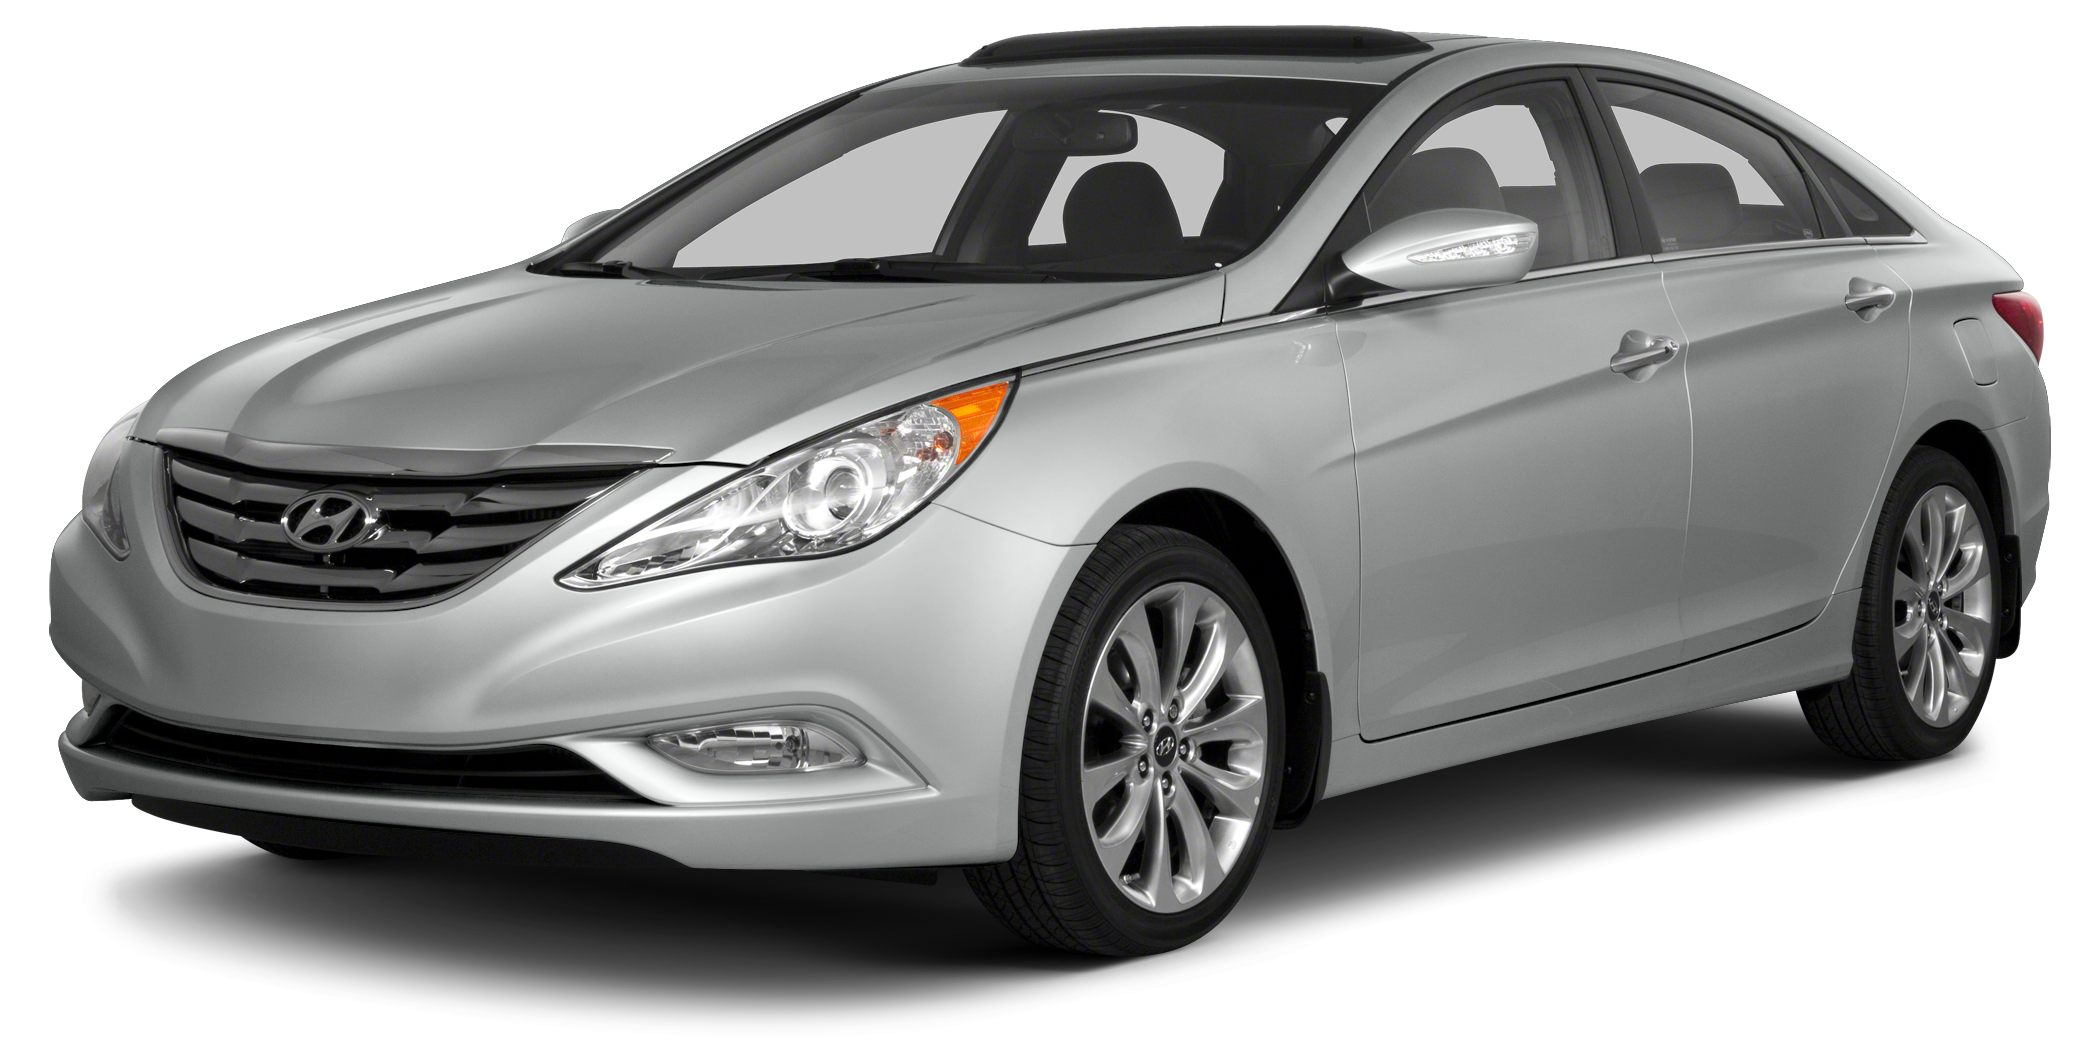 2013 Hyundai Sonata GLS Hyundai Certified and only 11k miles With a Perfect One-Owner Car Fax thi